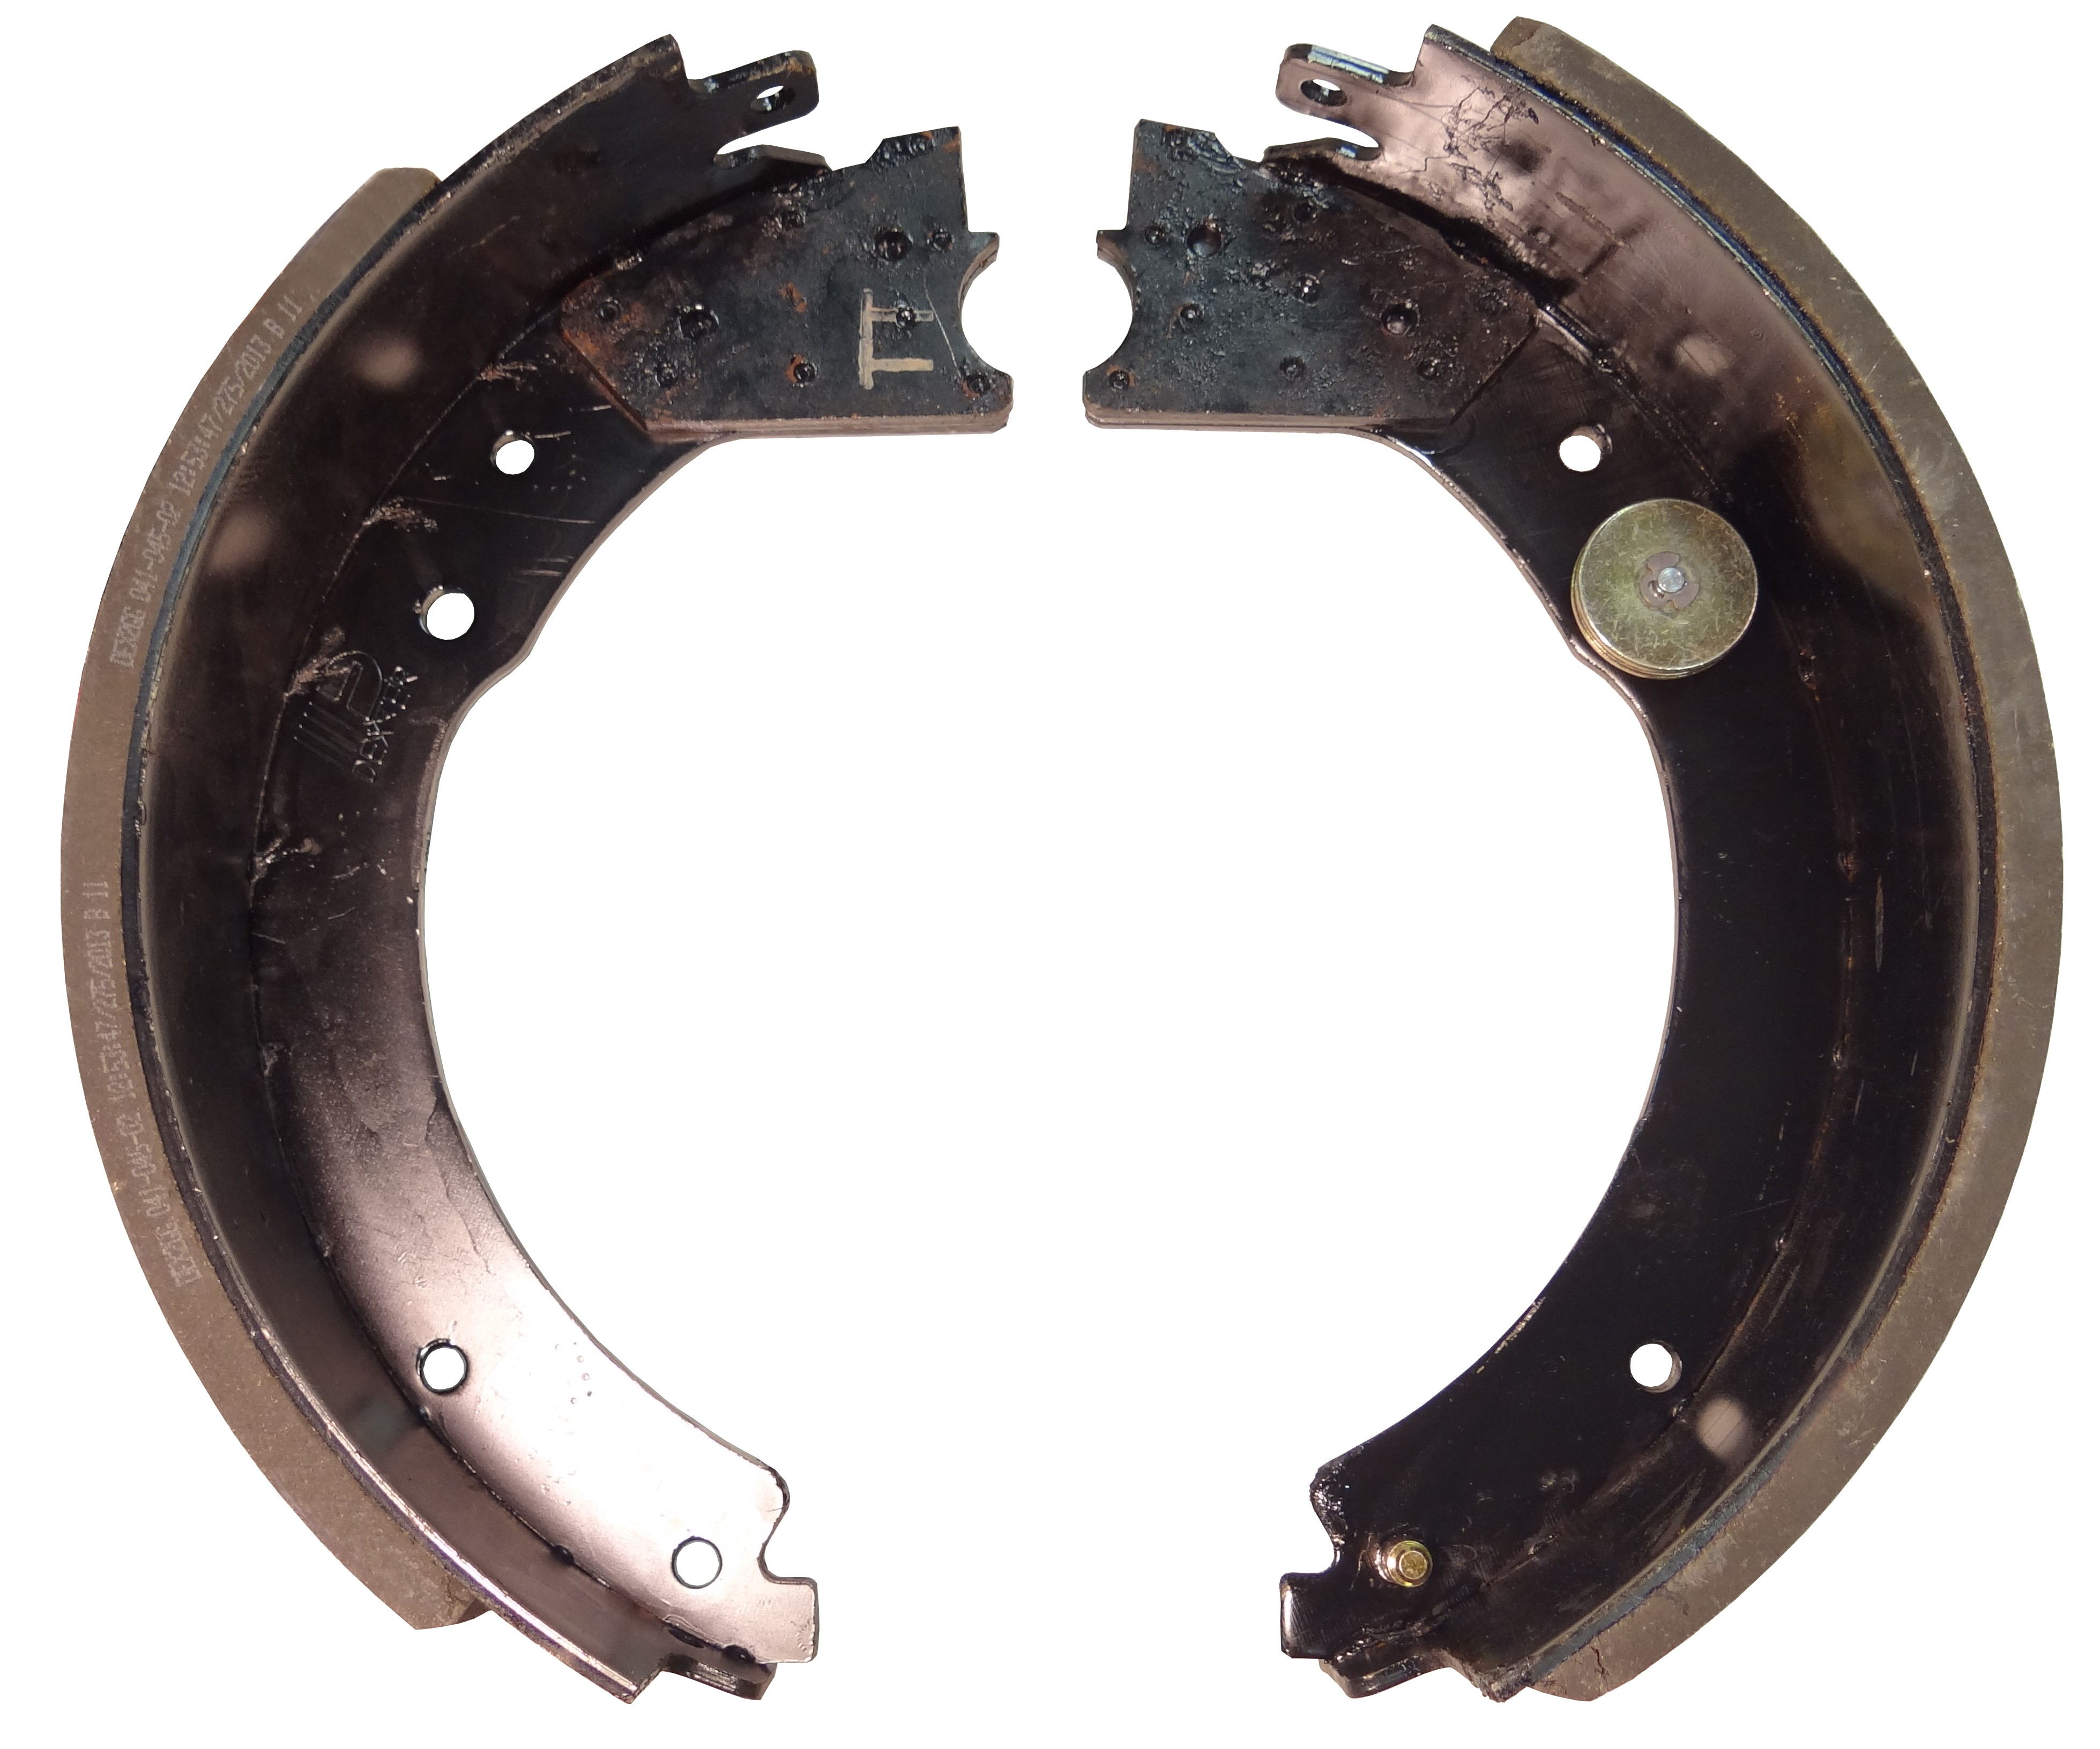 """Dexter® Brake Shoe and Lining Kit for 12 1/4"""" x 5"""" Electric Brake - Left Hand (Driver's Side) - 12,000 to 15,000 lbs."""